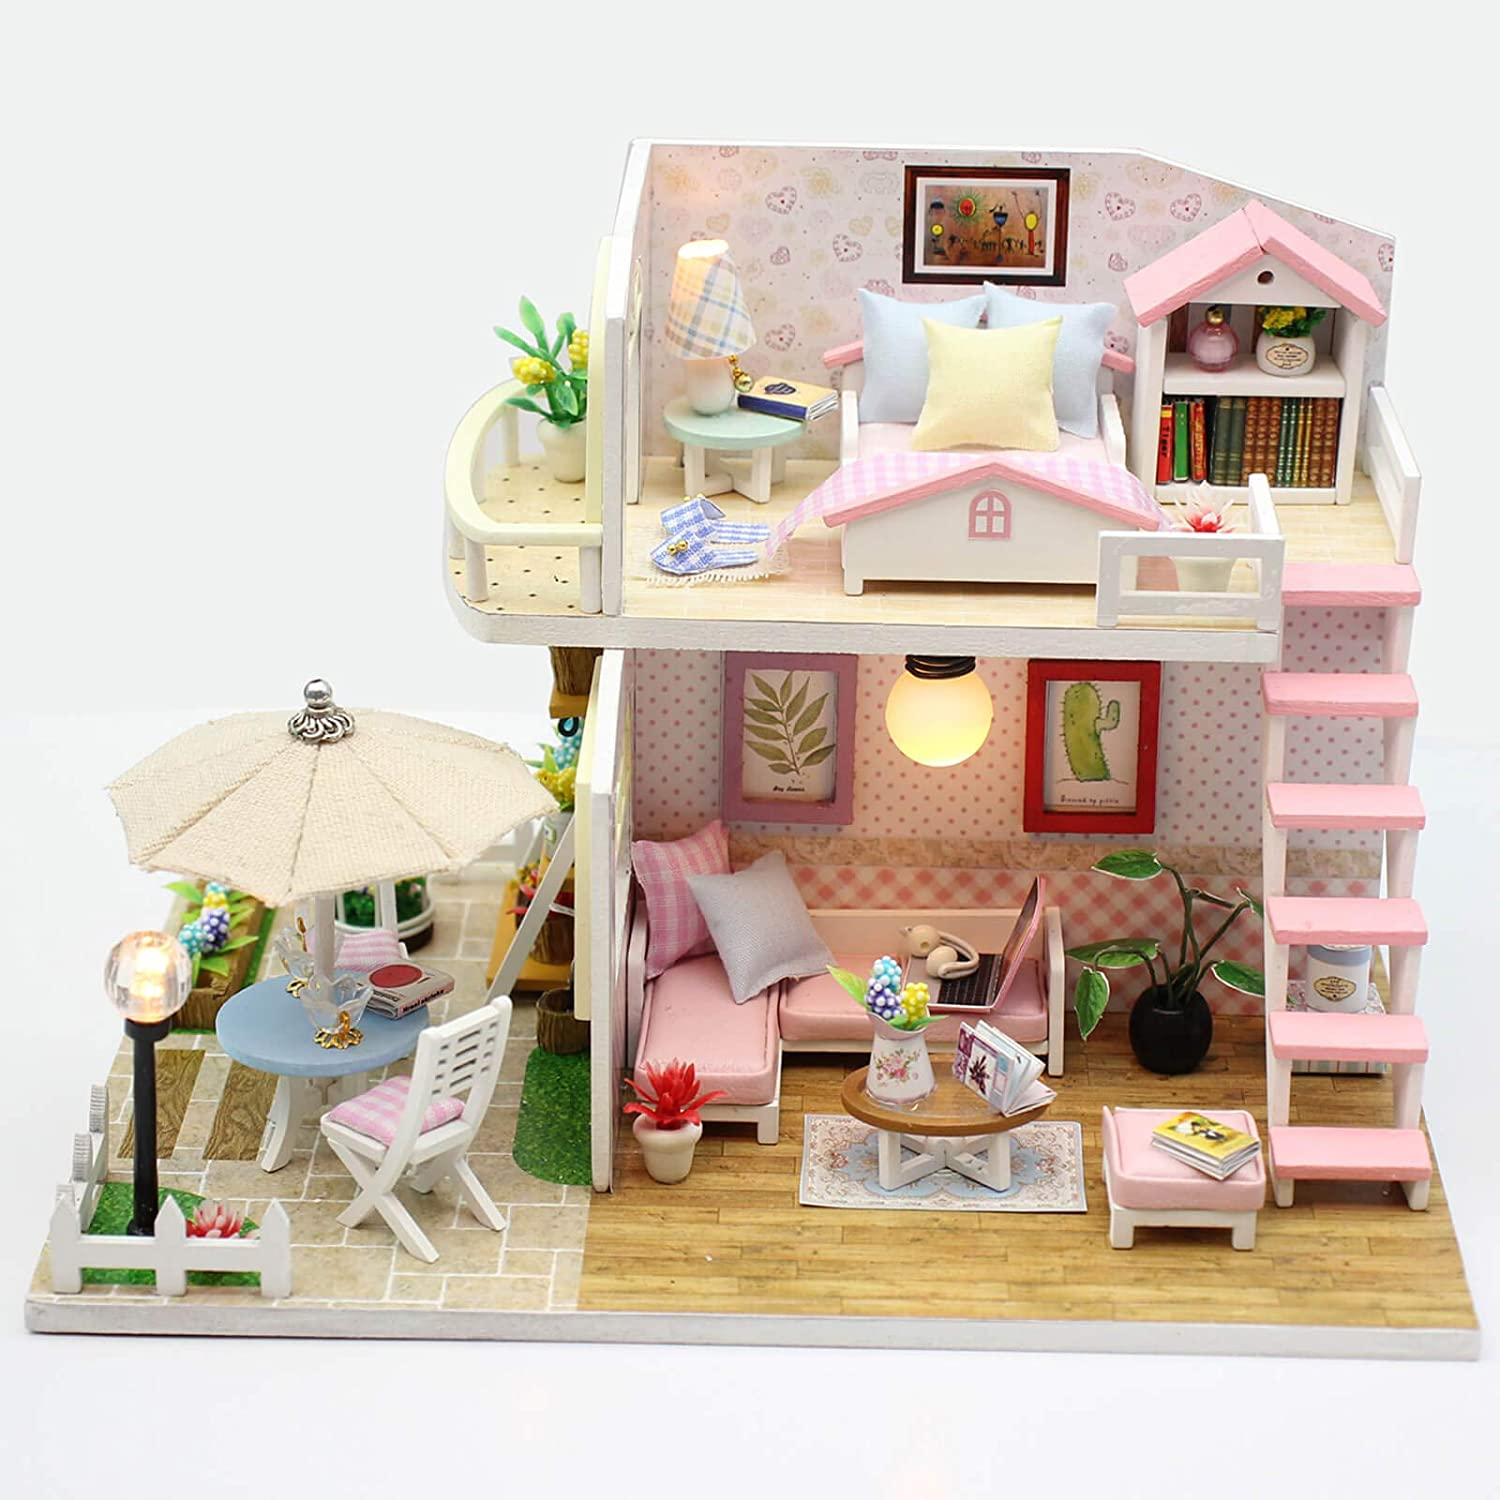 Indianapolis Mall WADILE DIY Miniature Dollhouse Kit Dust with House Large special price !! Proo